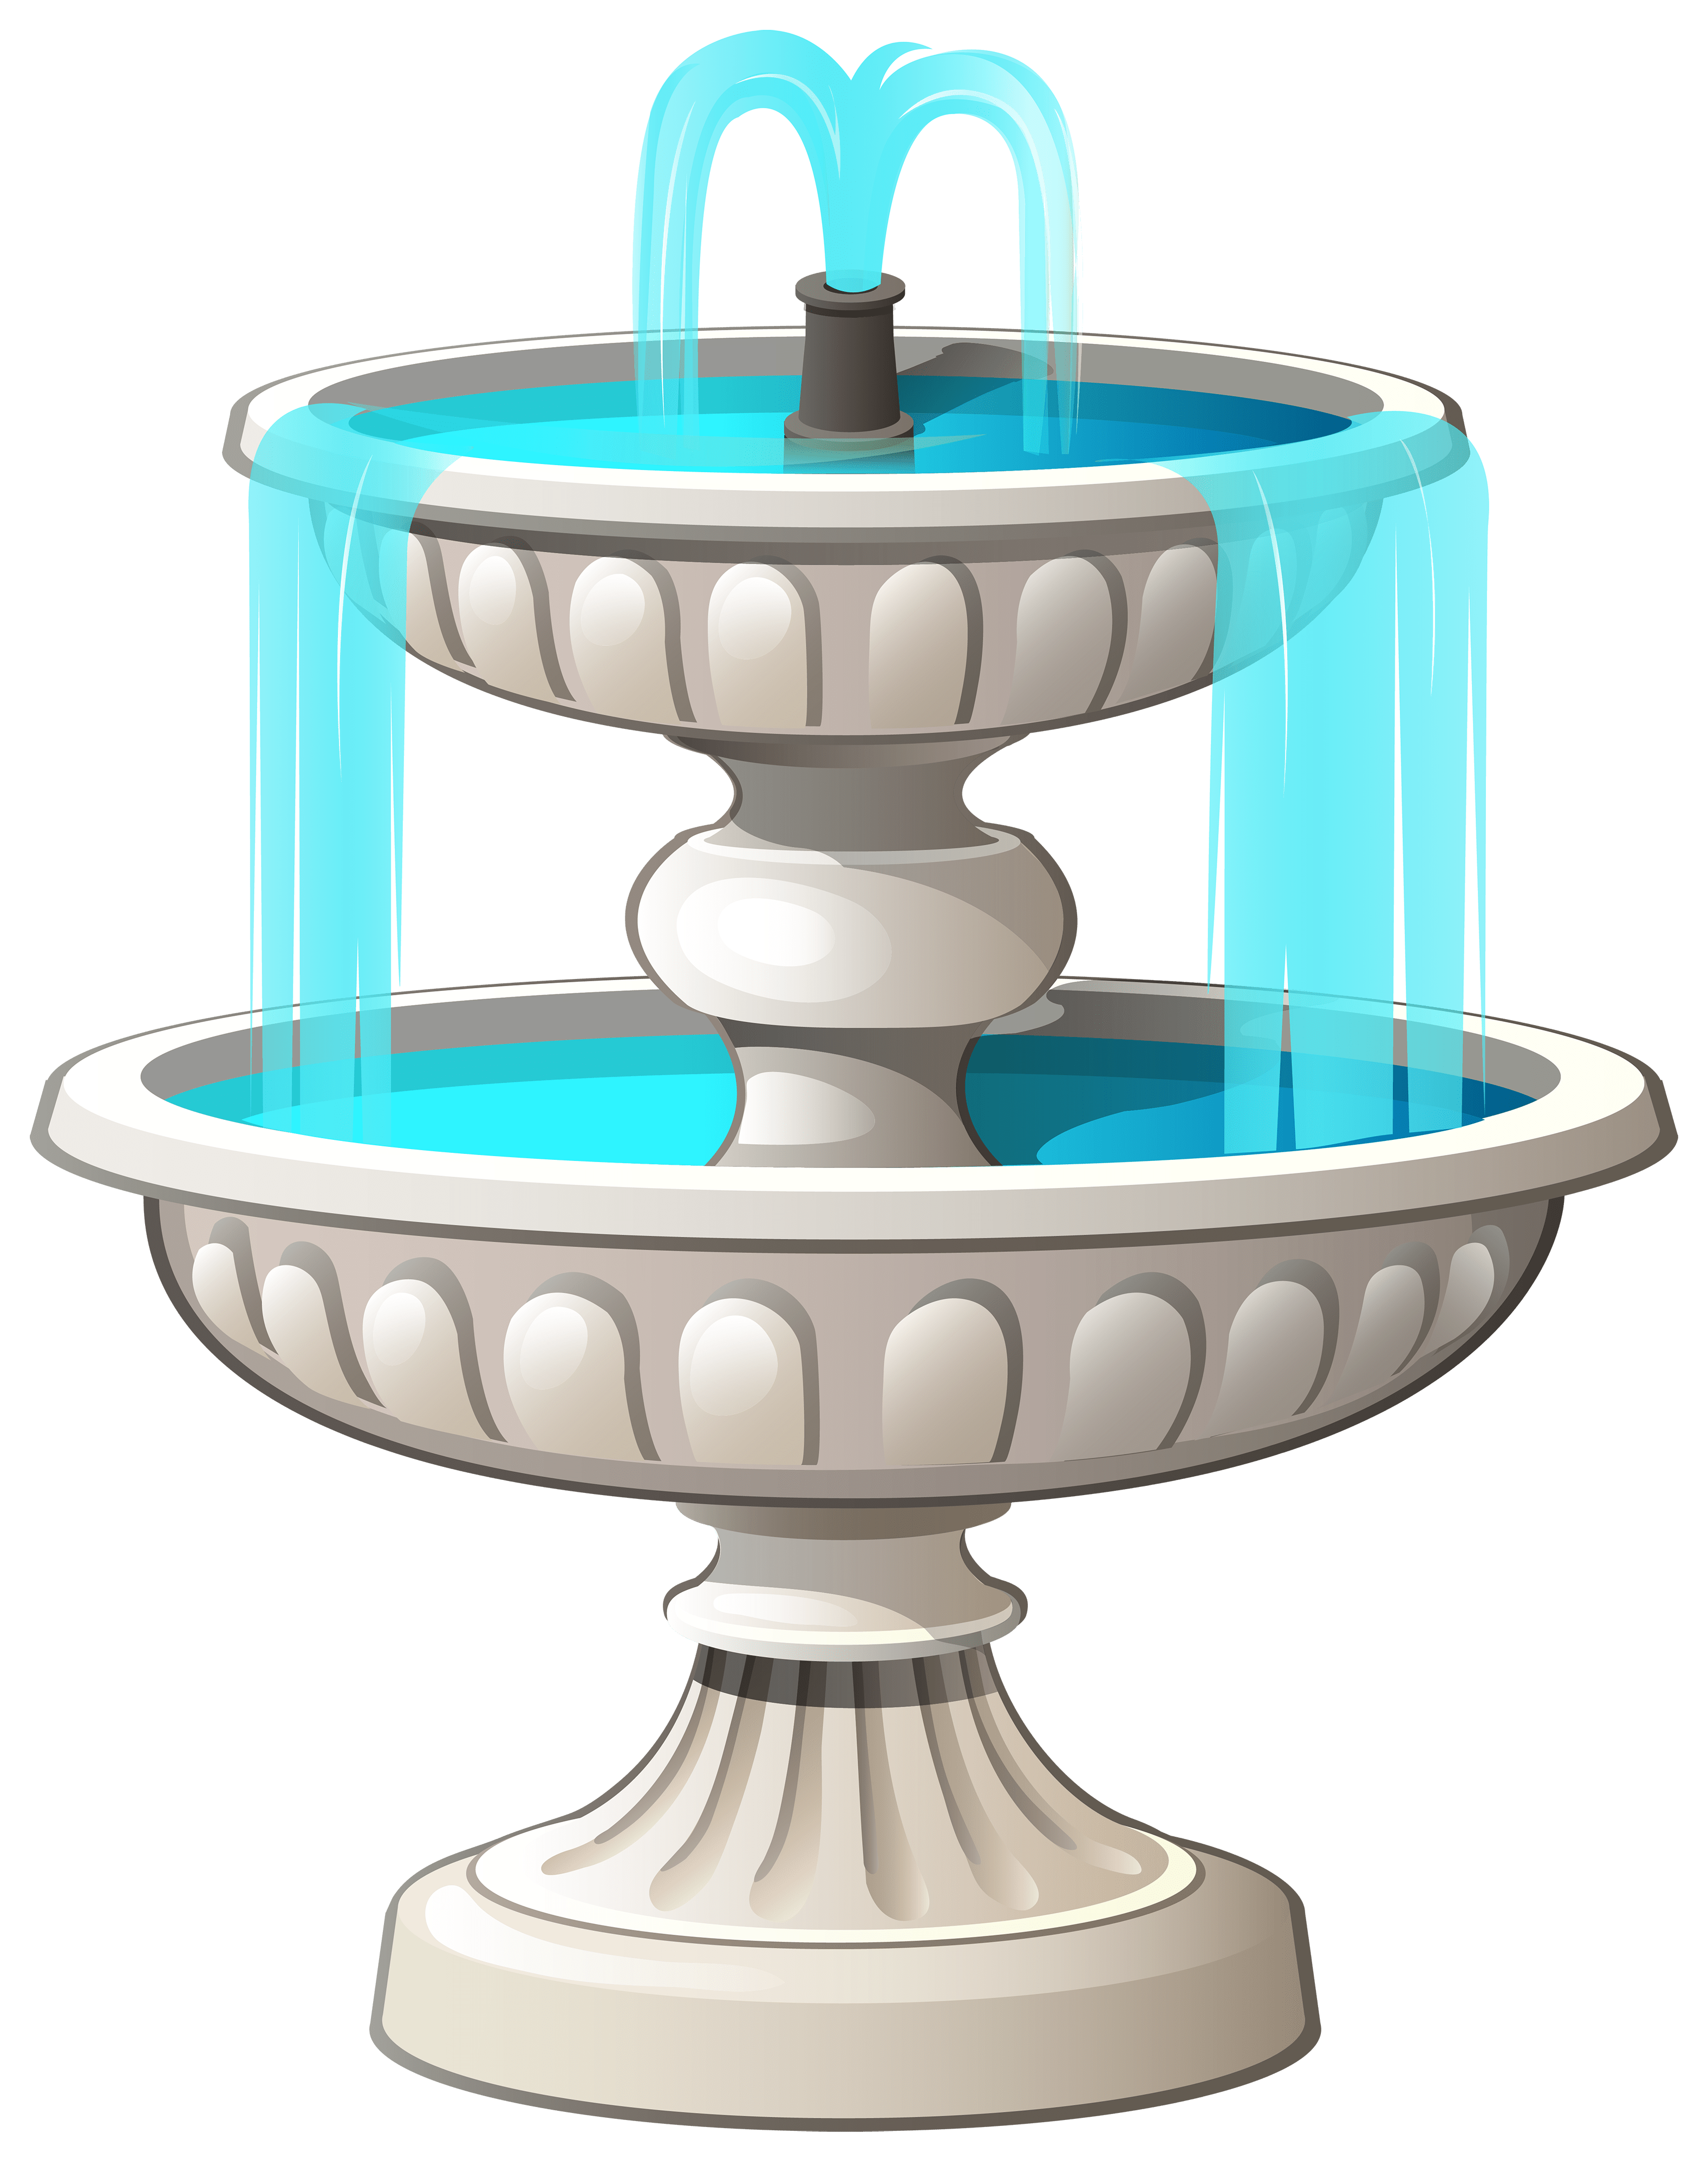 Fountain clipart plan clip royalty free library 37 Fountain Plan Transparent Background, Dundjinni Related Keywords ... clip royalty free library